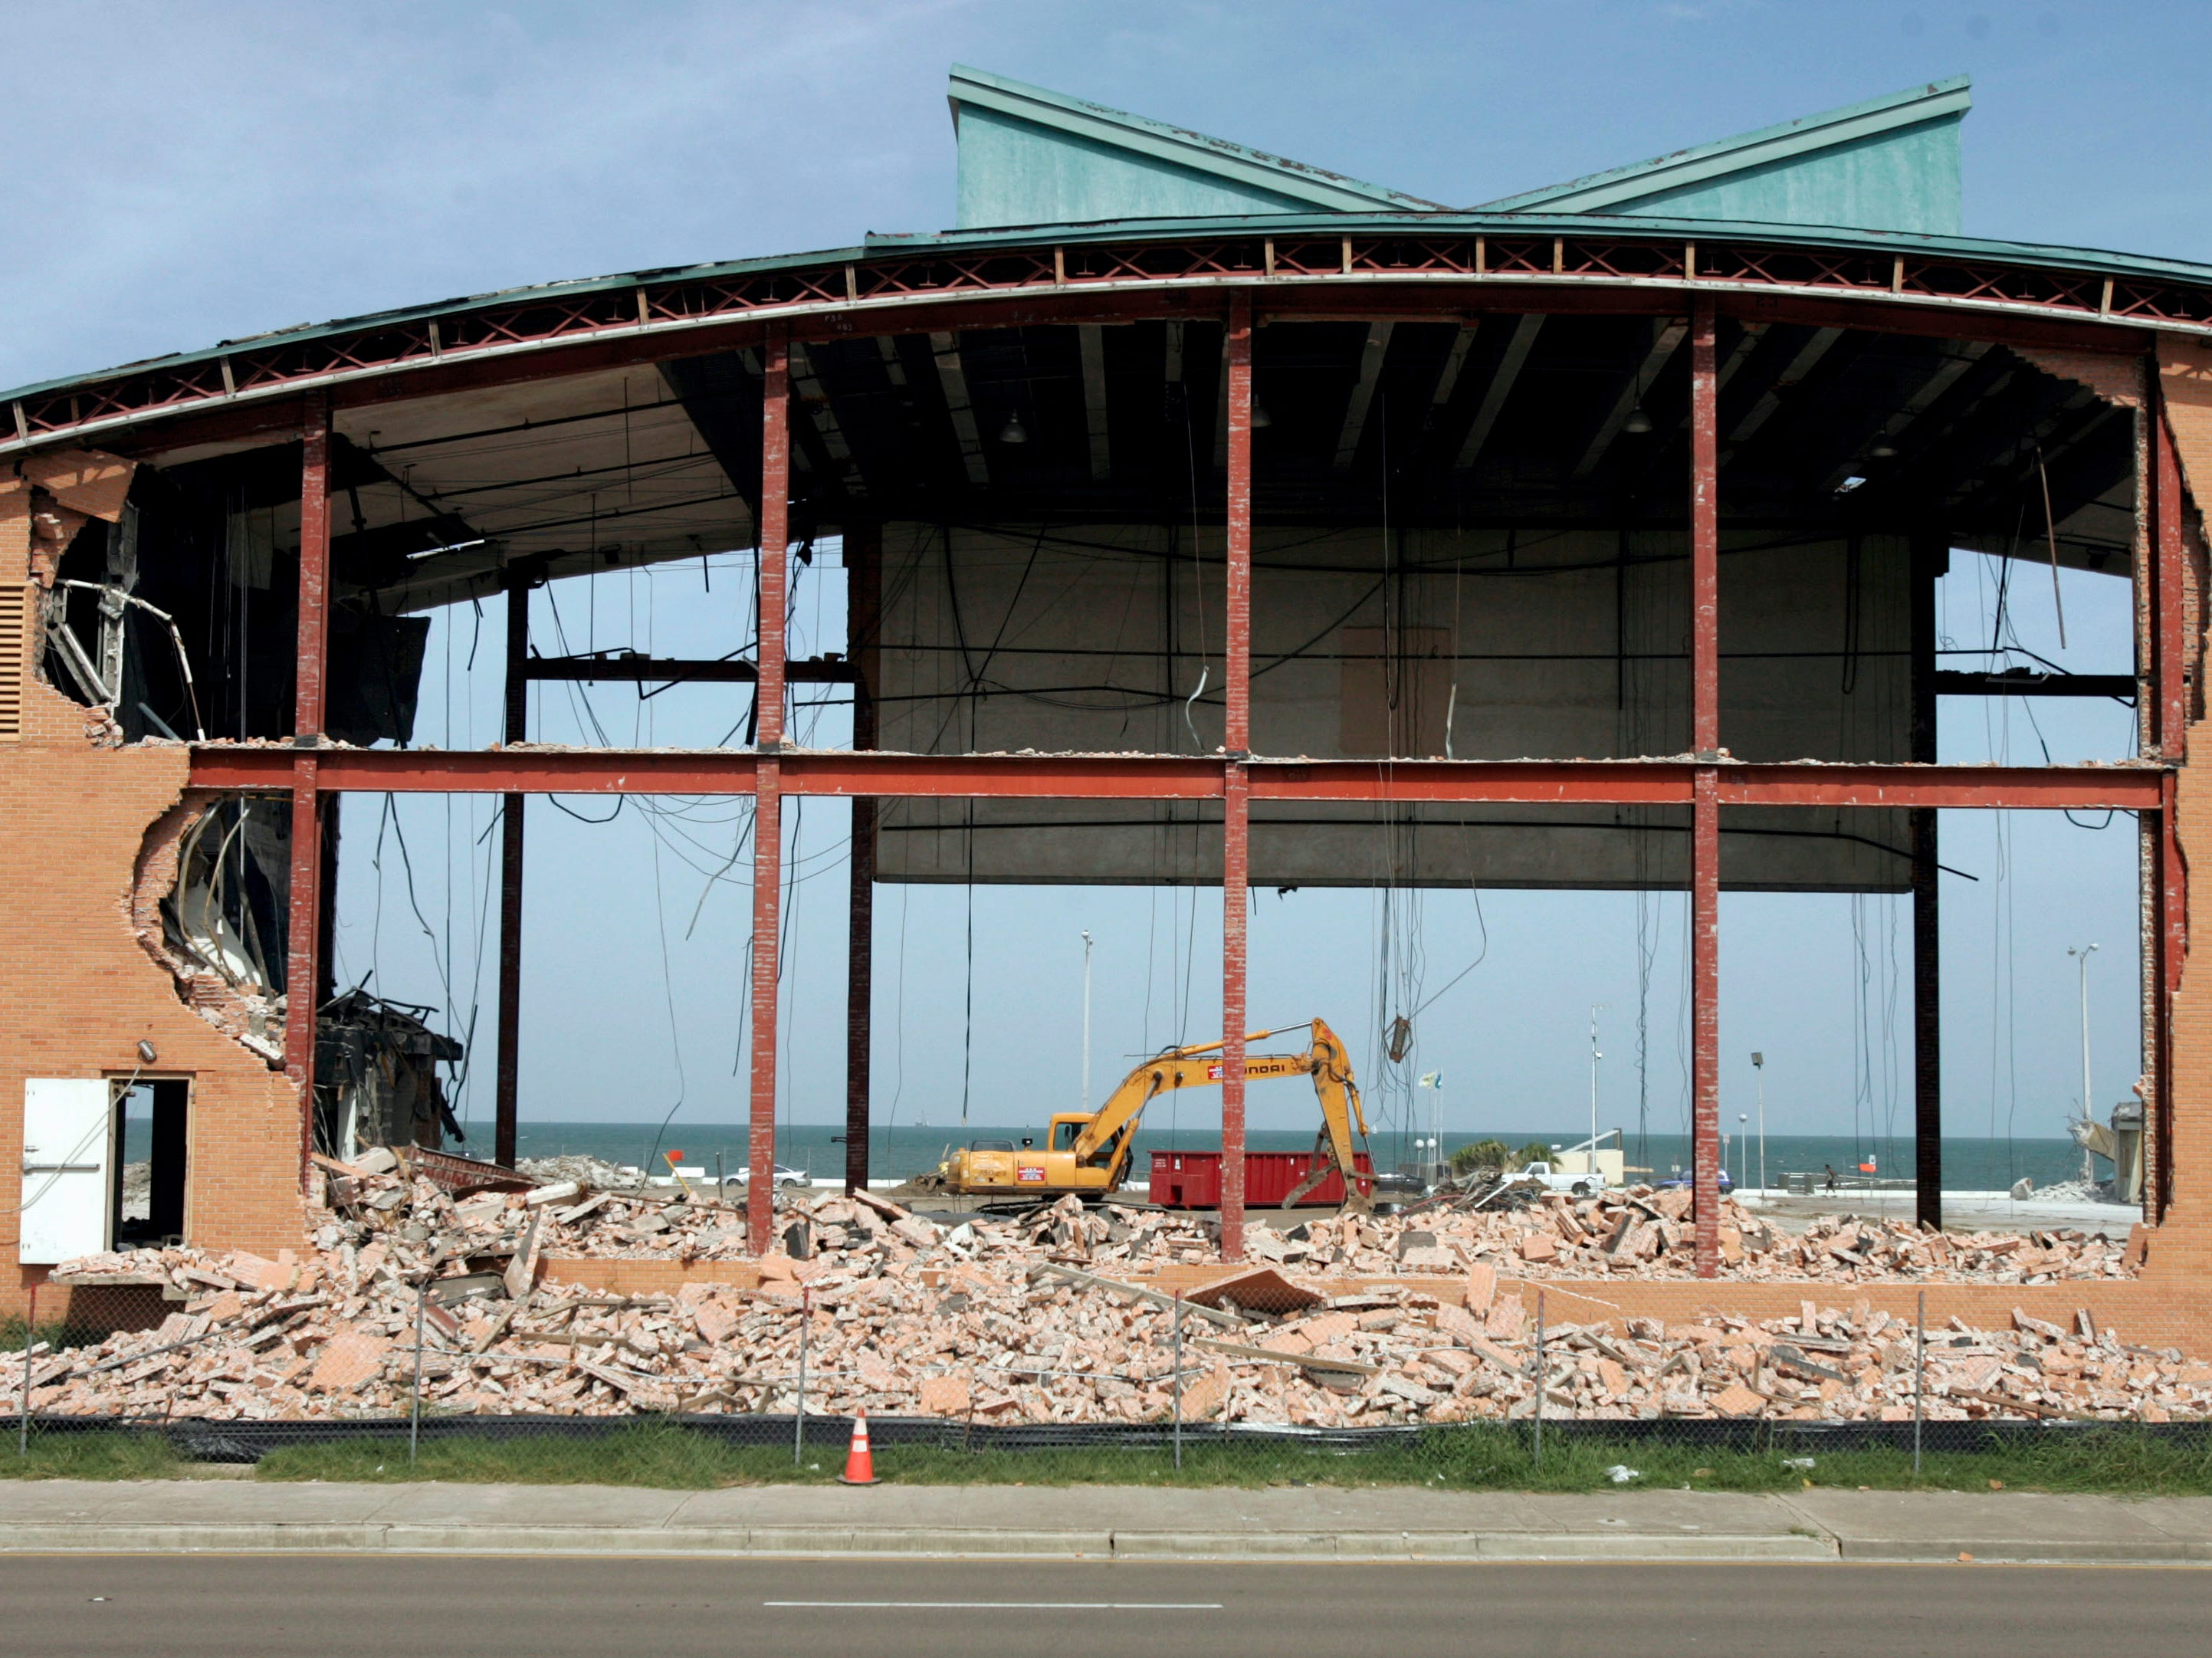 The bay starts to appear Friday, July 16, 2010 as the final wall of Memorial Coliseum starts to come down in Corpus Christi. Before demolition began, the city asked crews to save an 18-by-10-foot piece of a brick wall, pallets of bricks, a piece of the roof and marble slabs. The saved bricks was expected to come from the back side of the coliseum since it had the largest continous piece of wall.